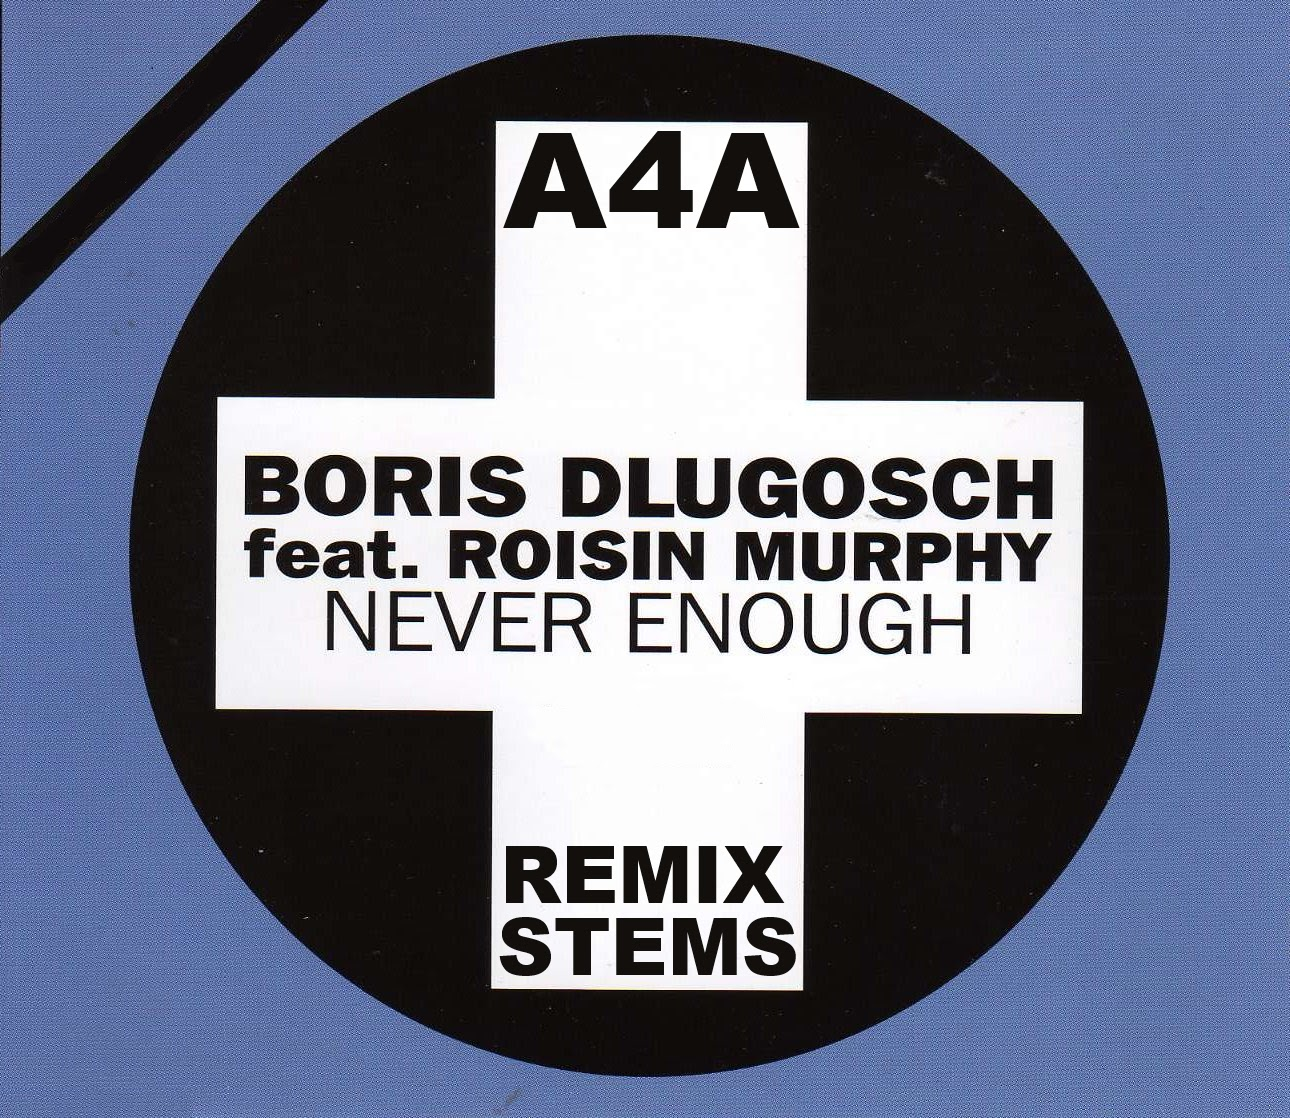 http://1.bp.blogspot.com/-0qfIfAnluys/UW3B45F7YPI/AAAAAAAAEoA/cgnE6g0gE1Y/s1600/Boris+Dlugosch+R%C3%B3is%C3%ADn+Murphy+Never+Enough+REMIX+STEMS.tif